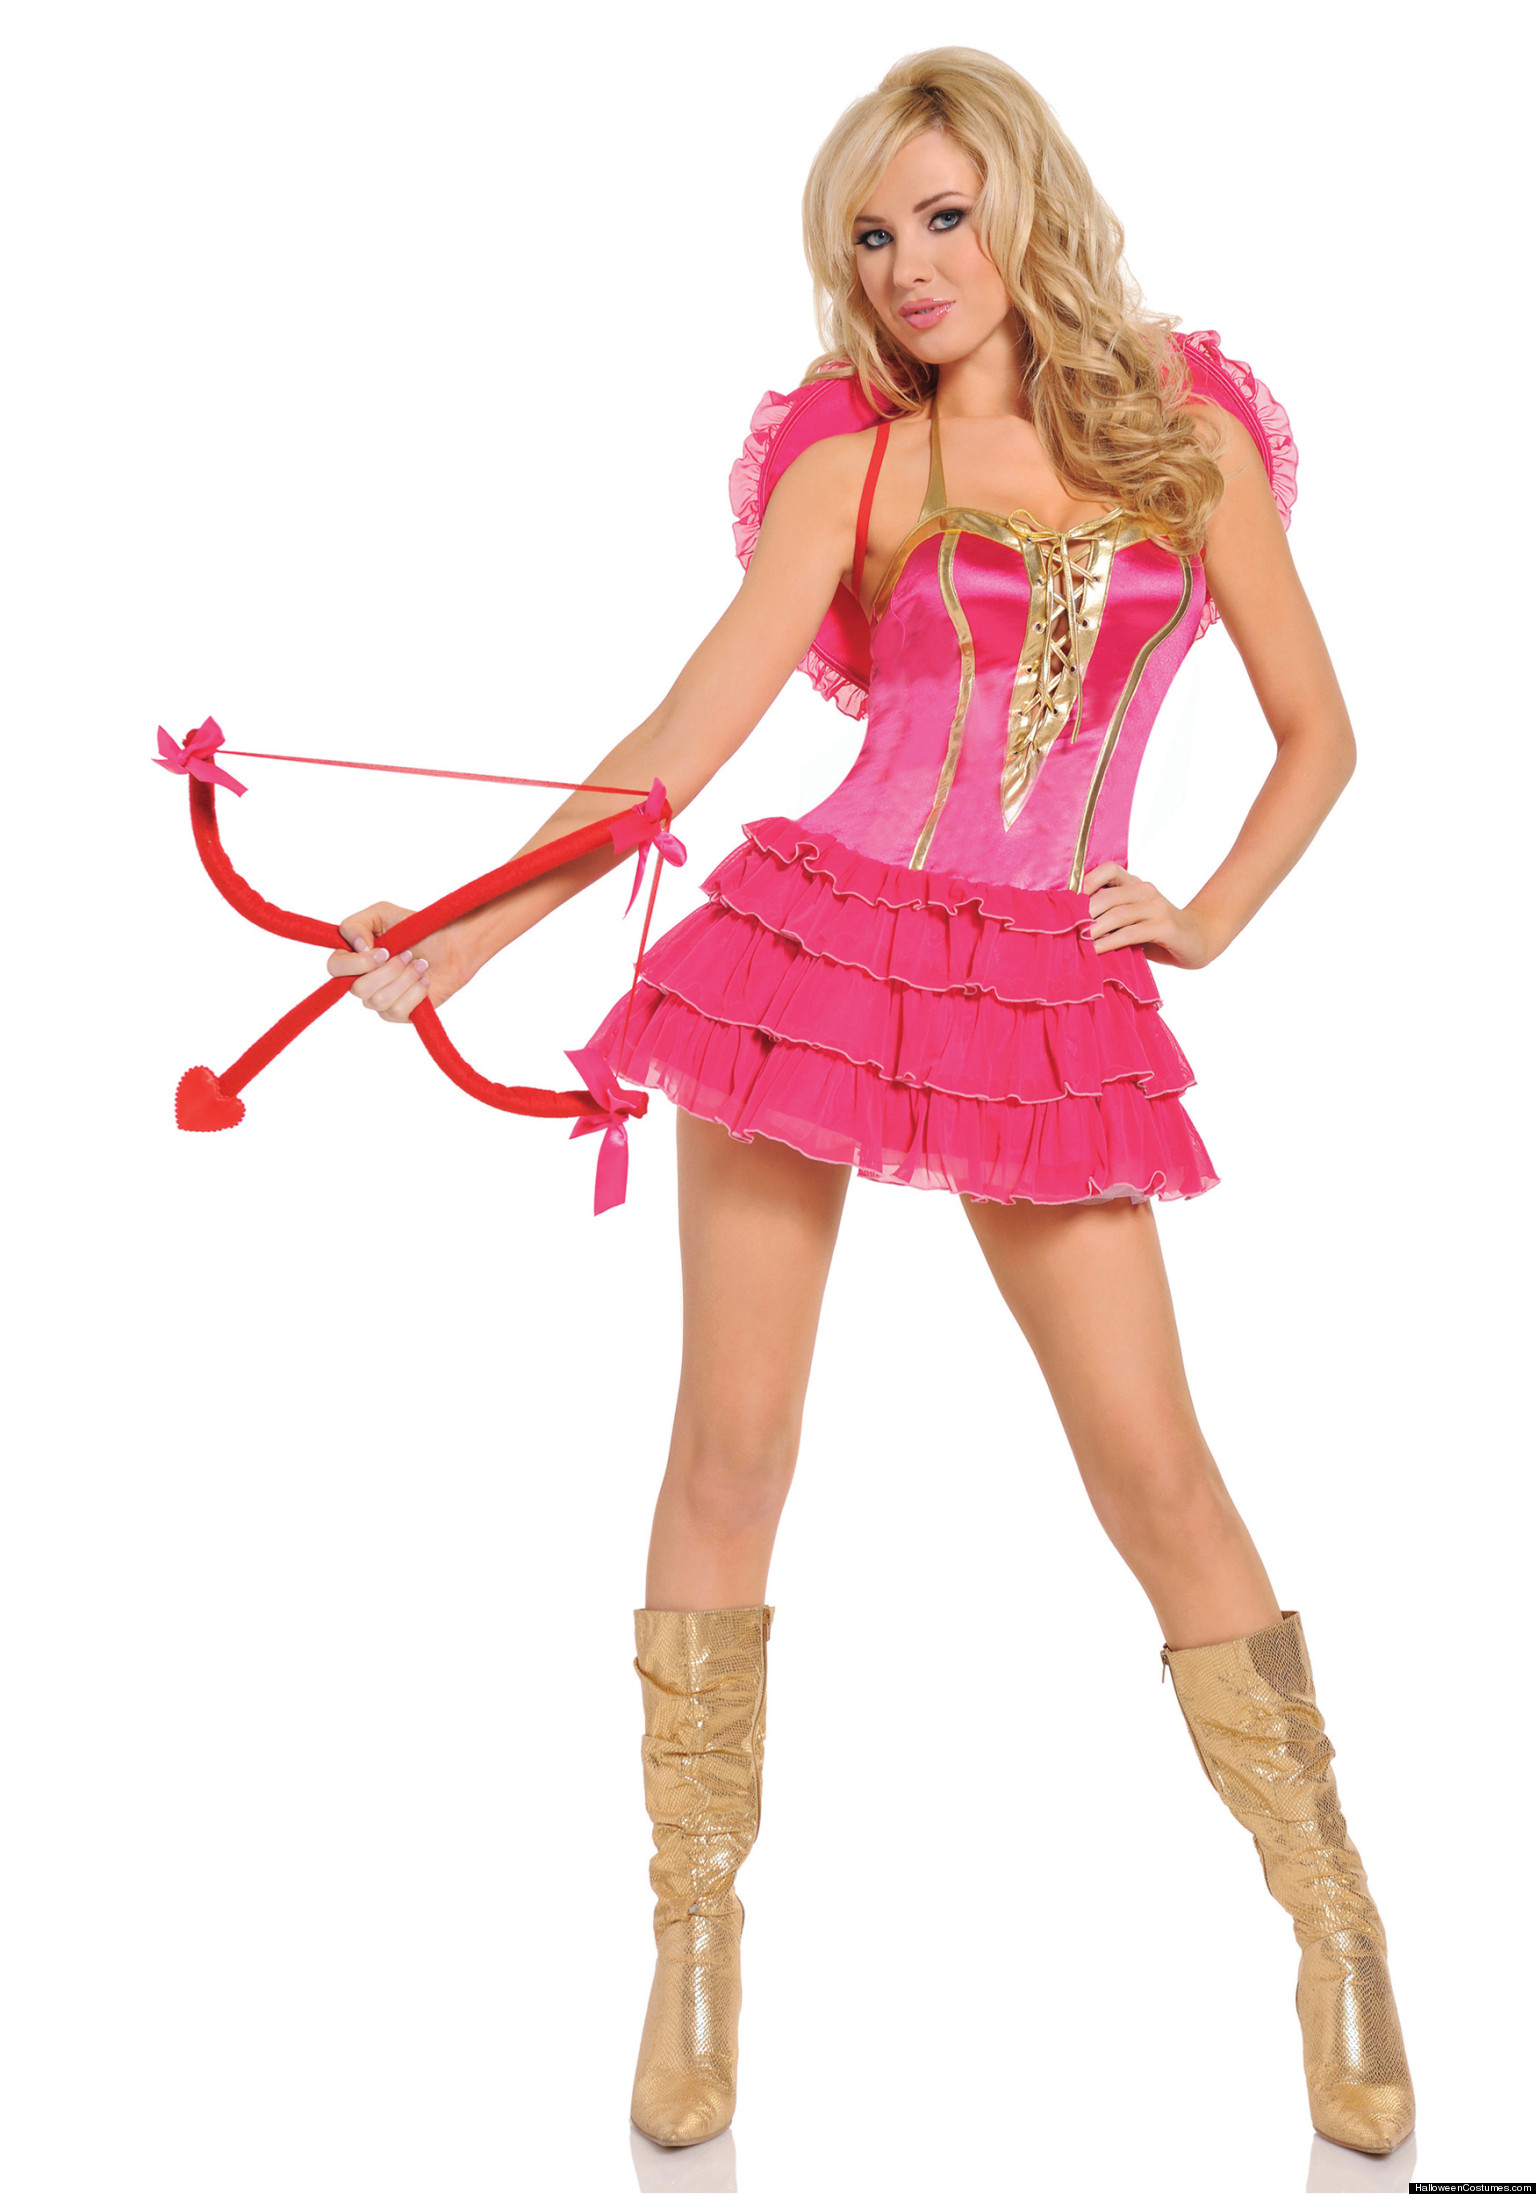 Bizarre Valentines Day Gift Guide: Sexy Cupid Outfit